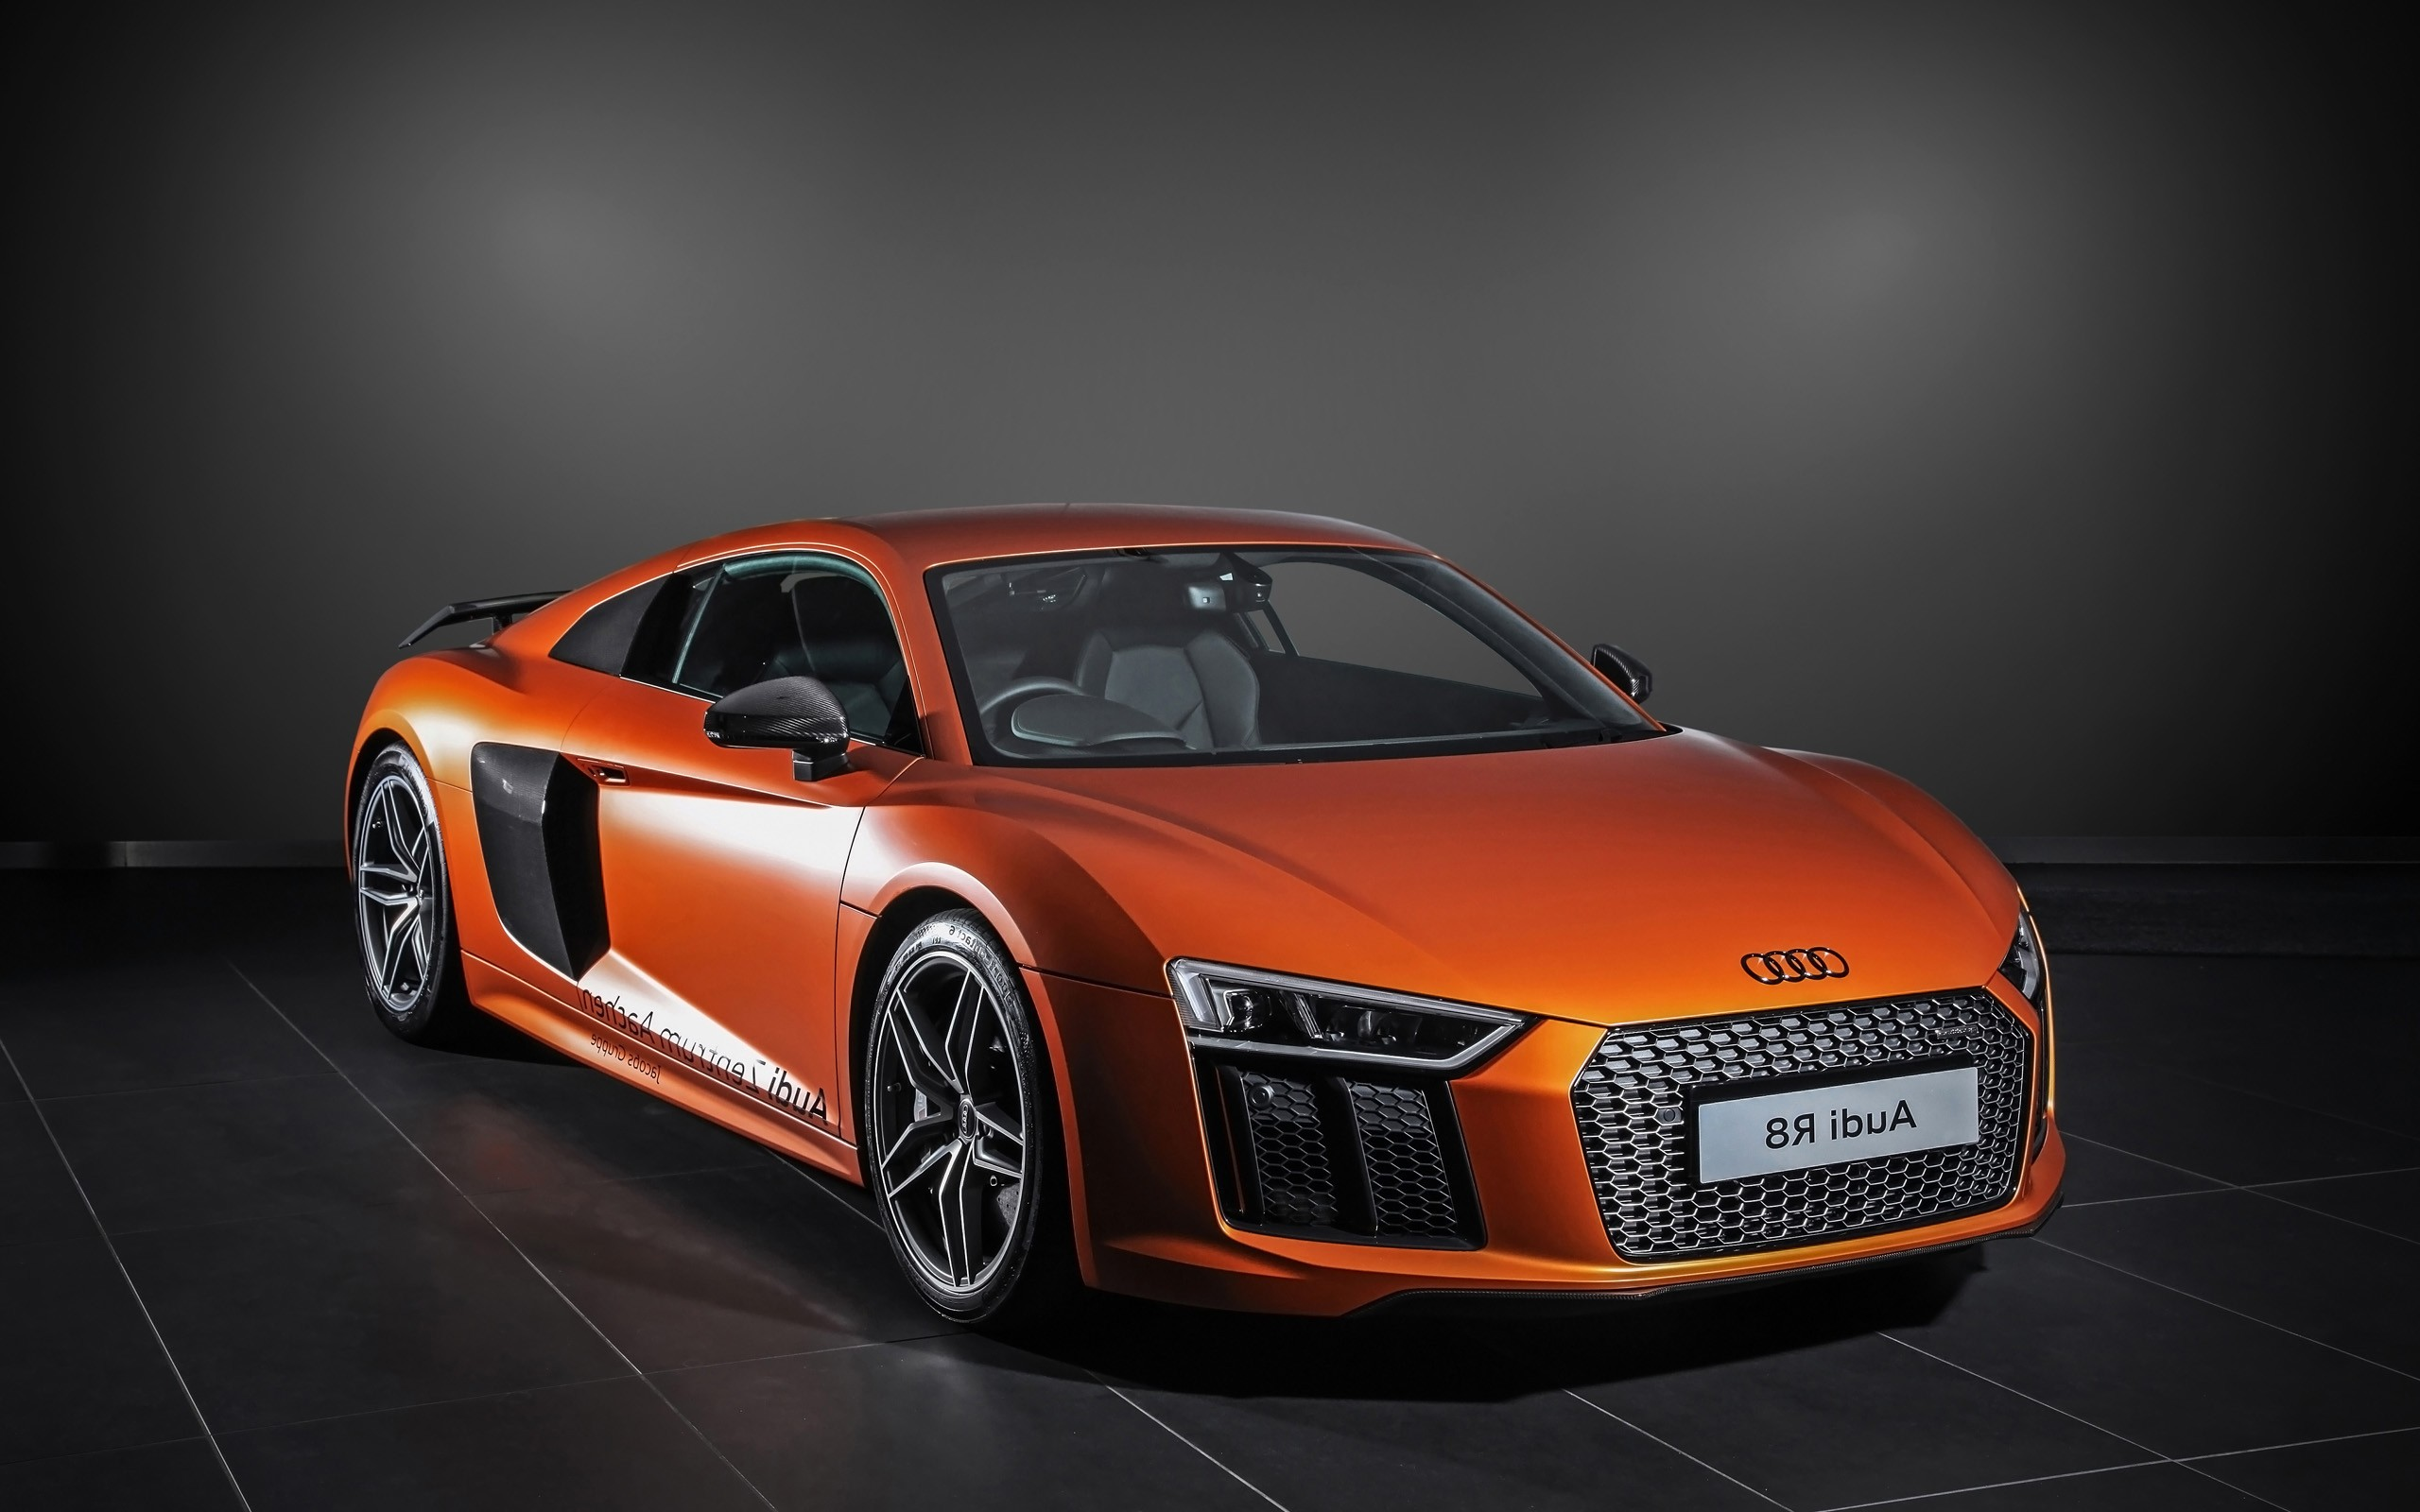 2048x2048 Audi R8 V10 Tuned Custom Ipad Air Hd 4k Wallpapers Images